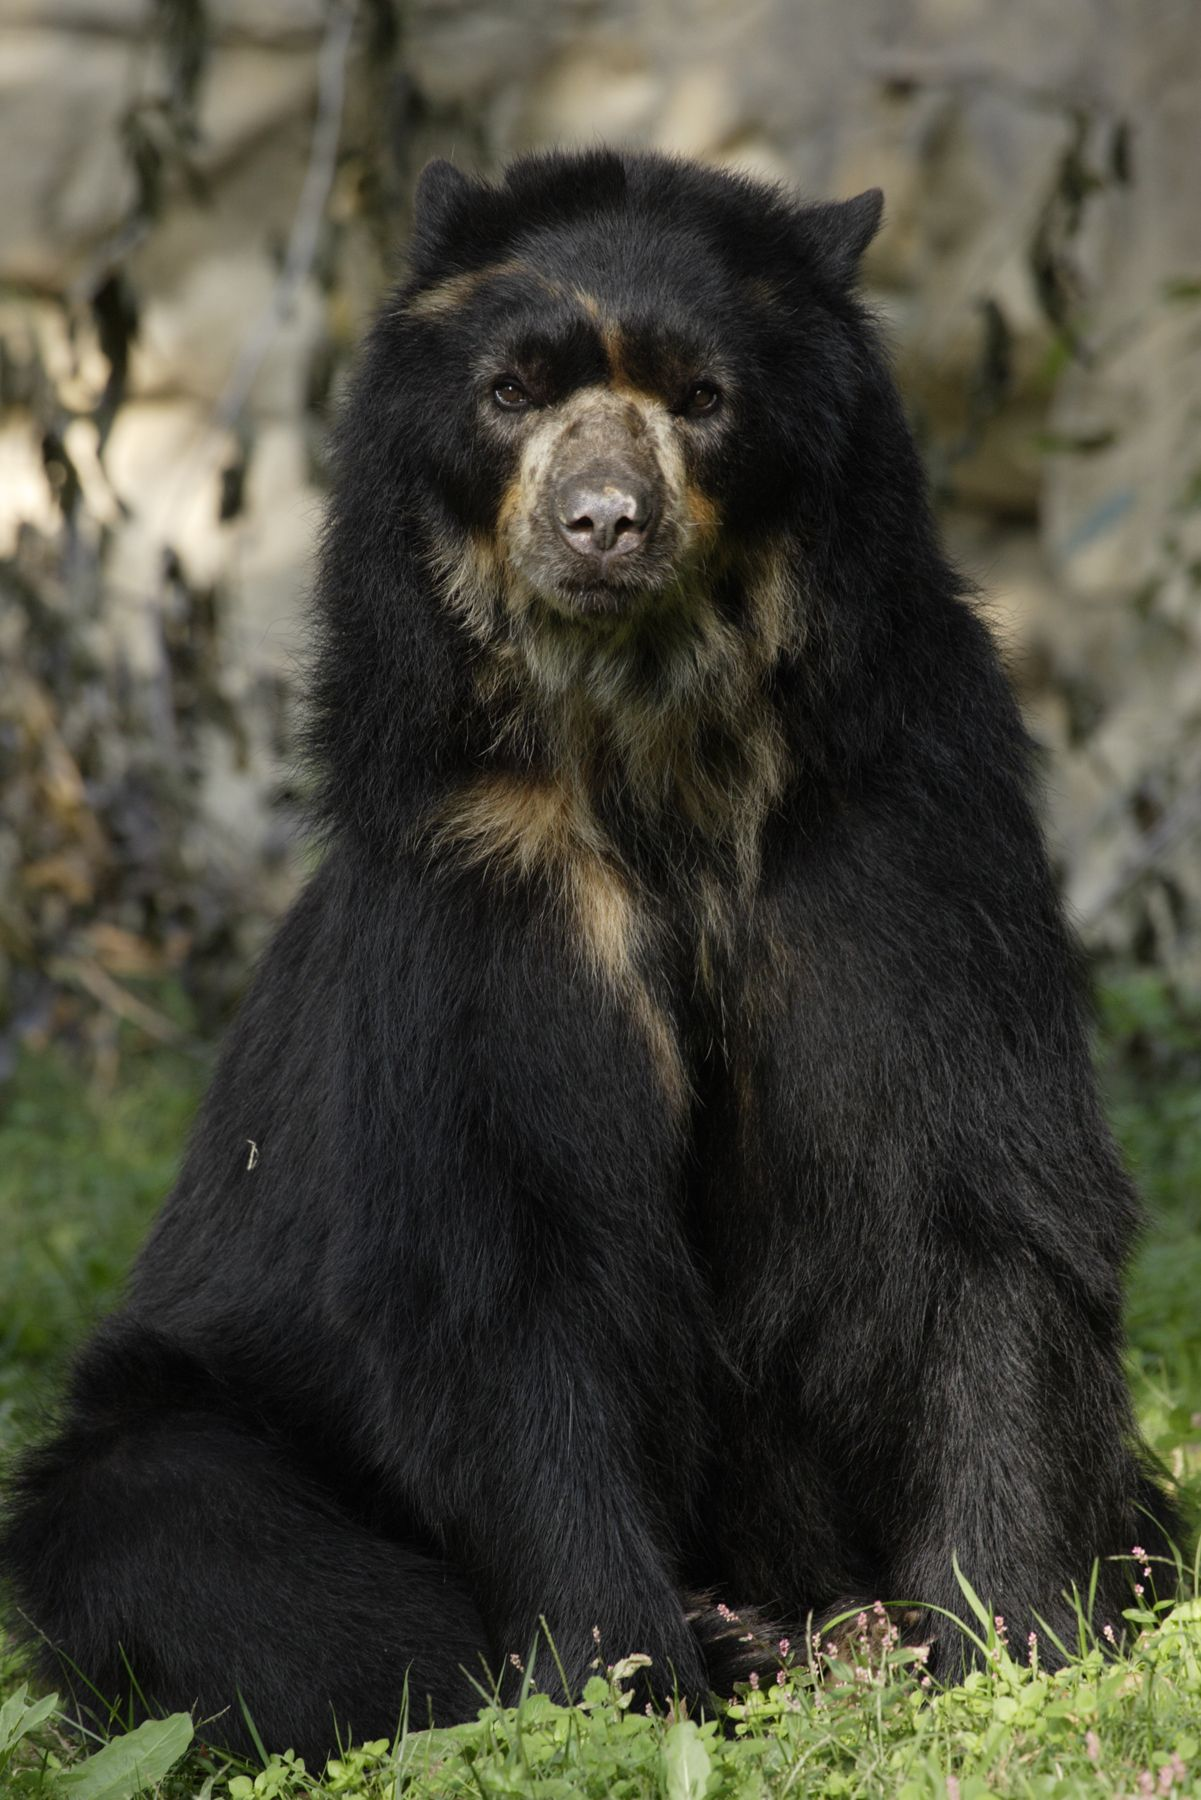 Andean or Spectacled Bear, the only bear native to South